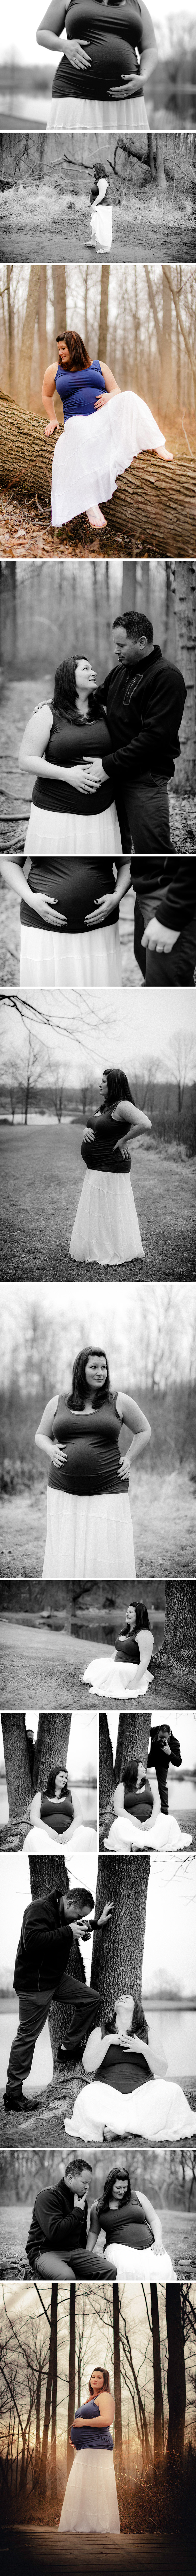 Keely's maternity session at Sourland Mountain Preserve